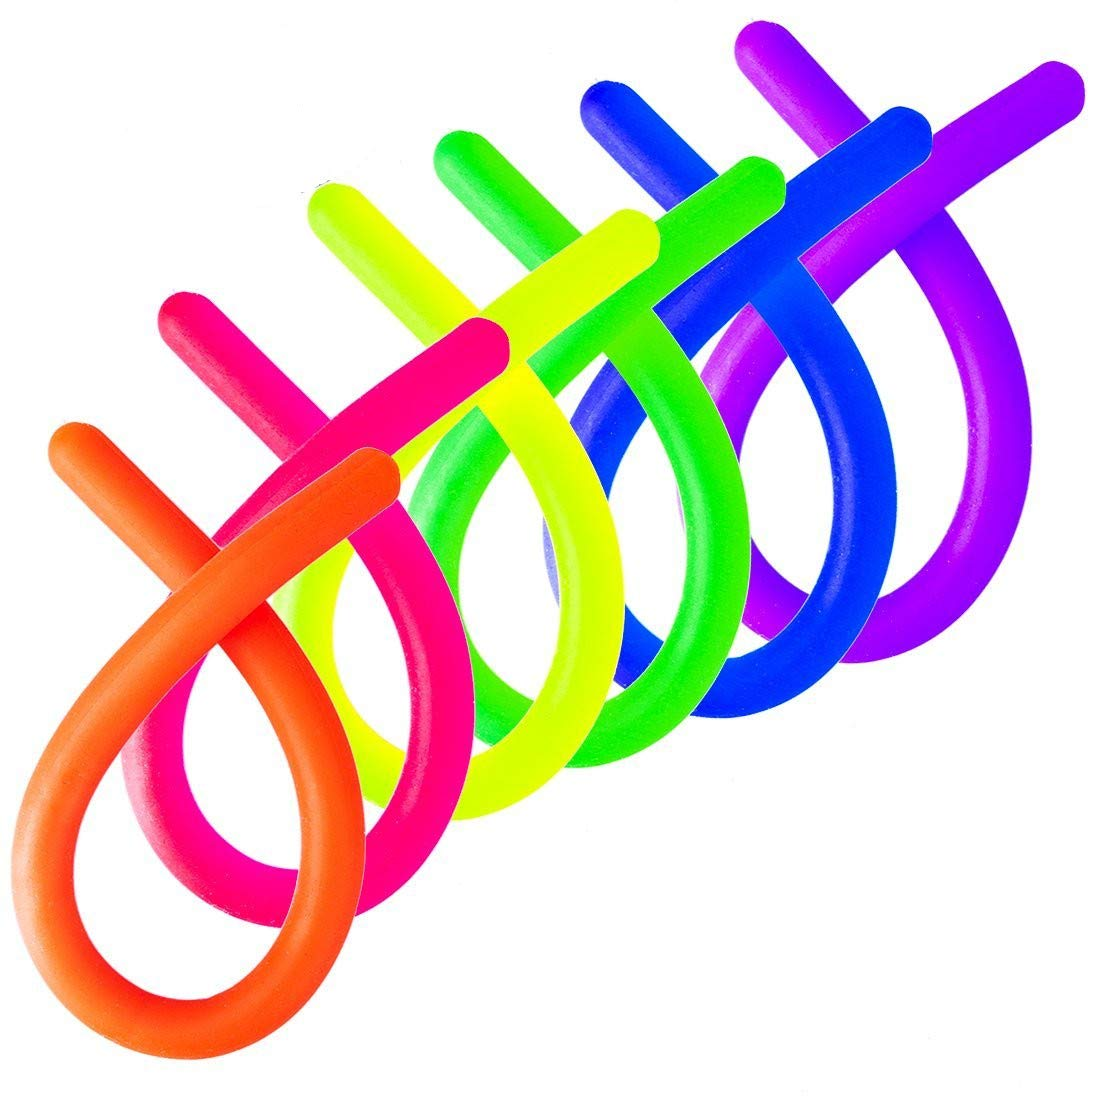 HMILYDYK Sensory Fidget Bright Color String Toy for Kids Adults Reduce Stress and Anxiety for ADHD ADD OCD Autism Gift 12PCS GUSTRIP-12PCS